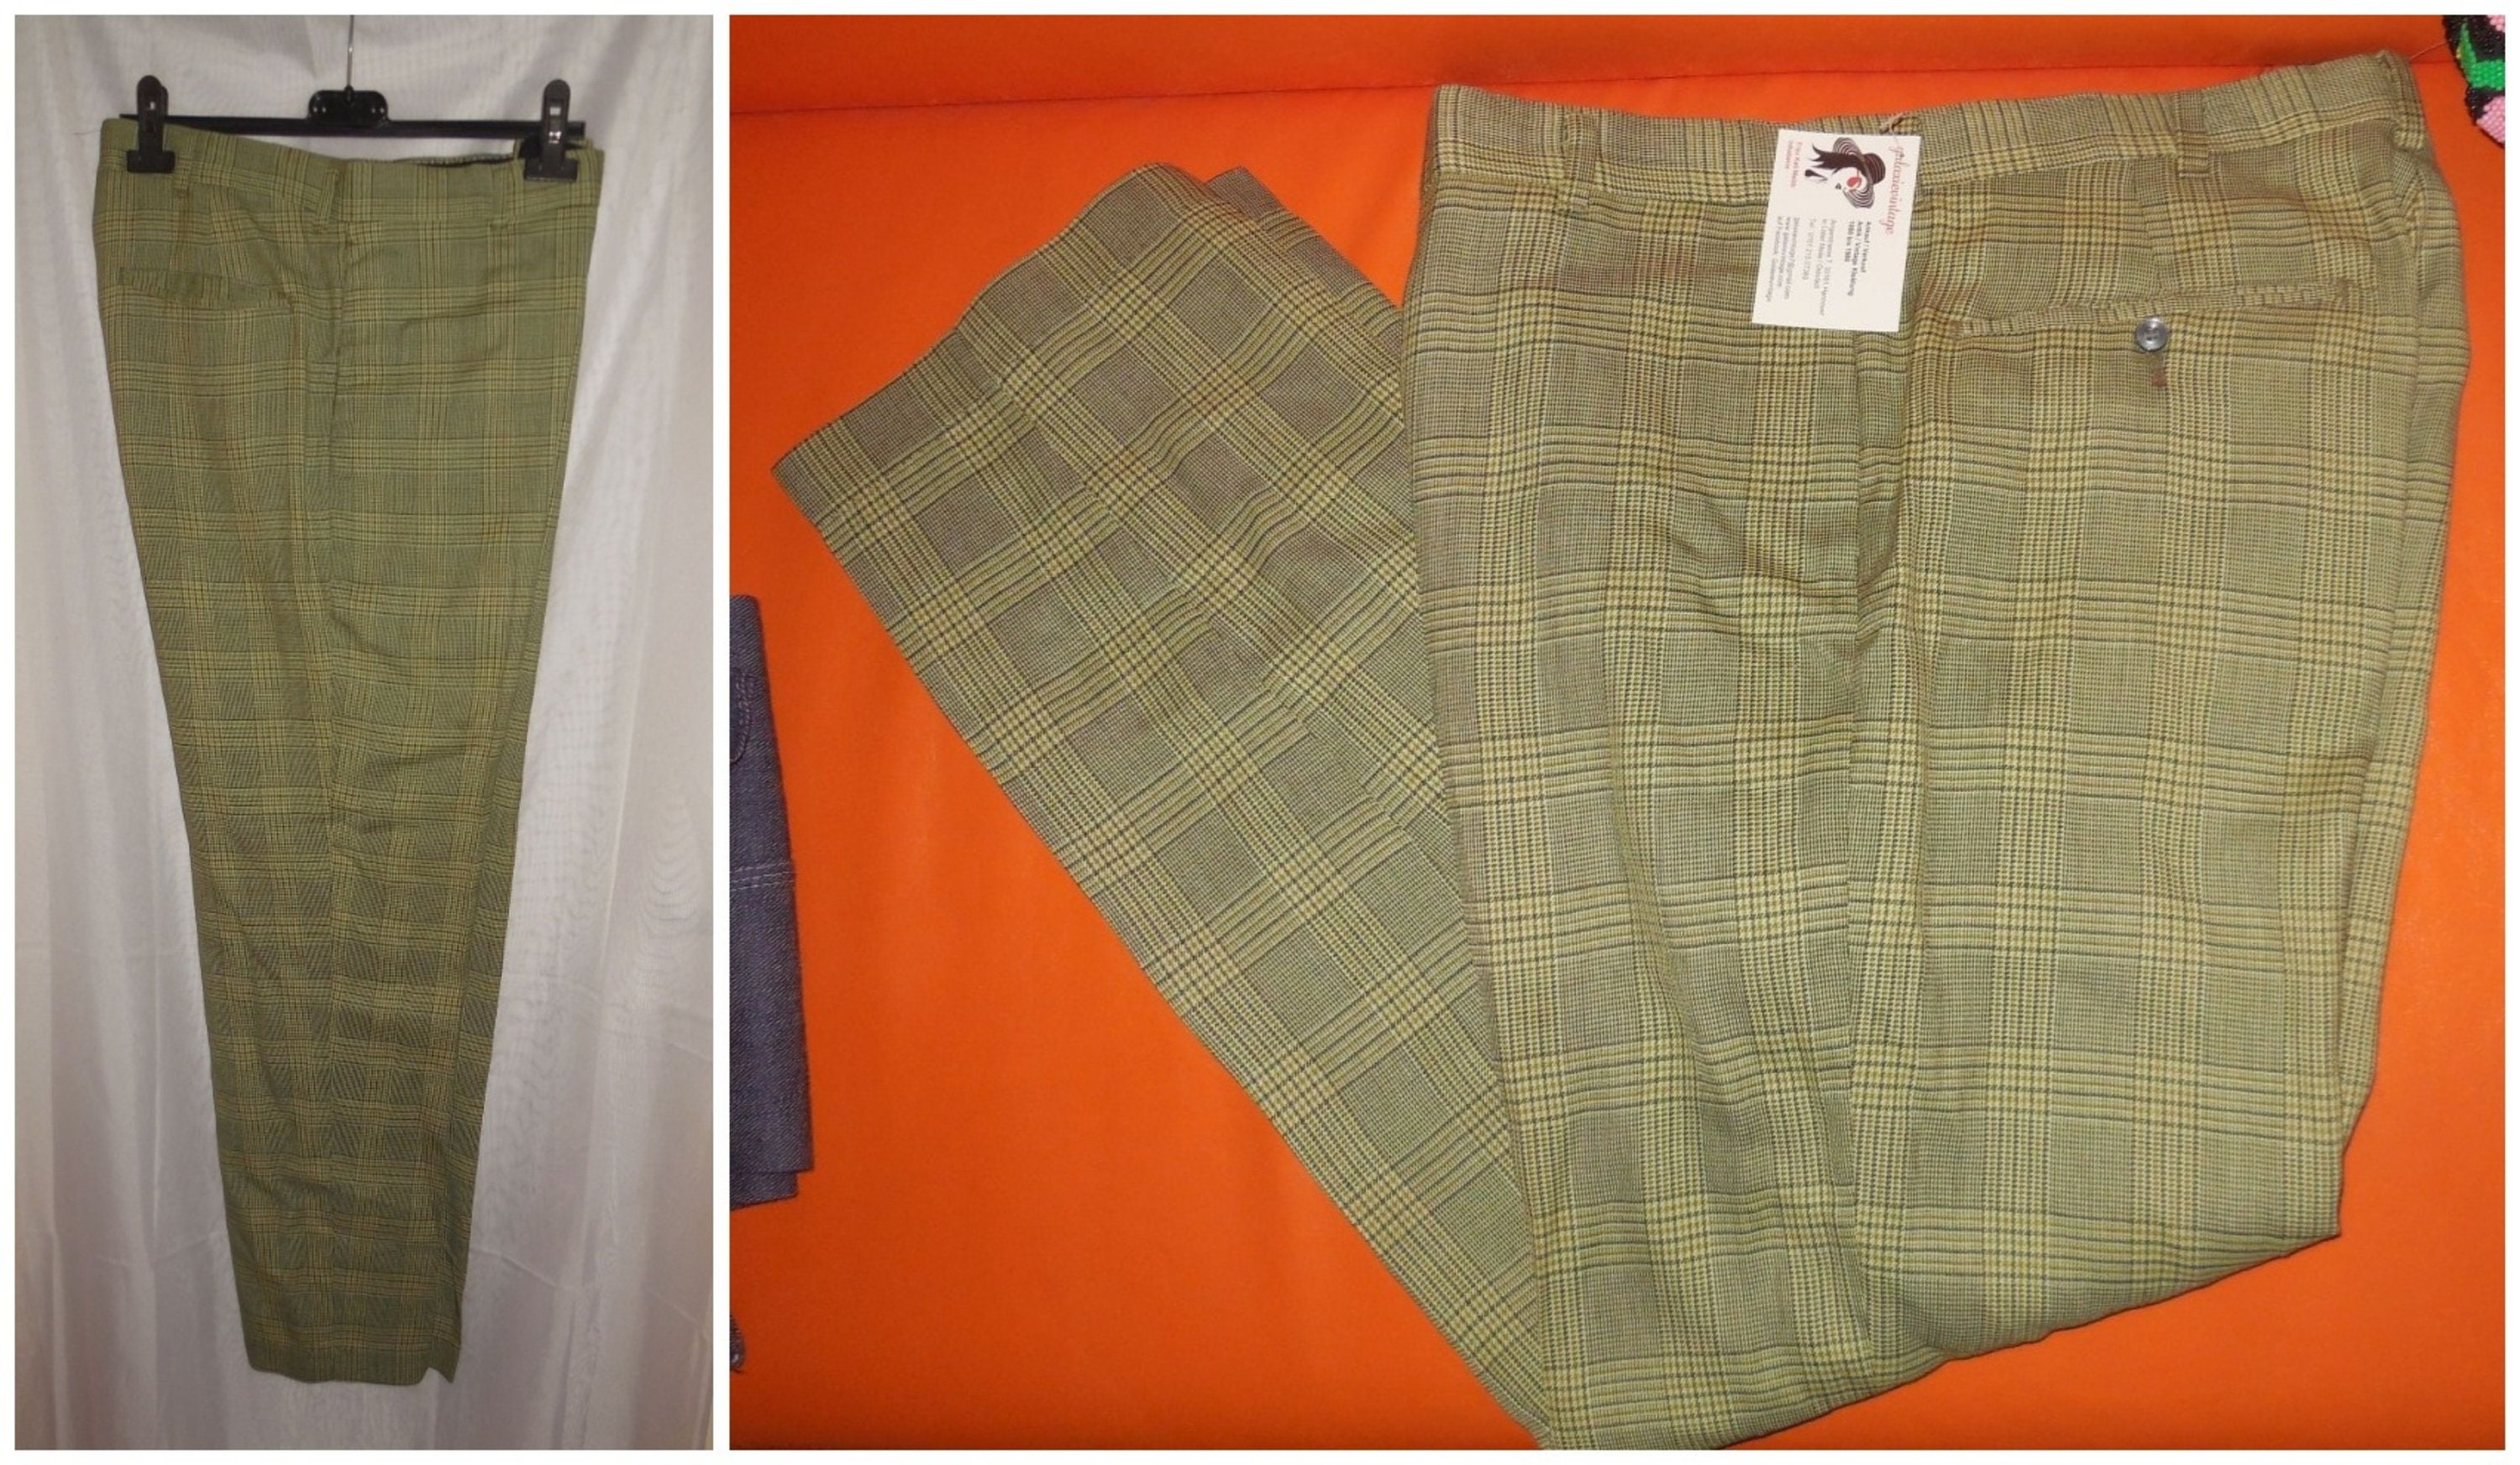 4f78553c13 Vintage Men's Pants 1950s 60s Green Plaid Sears Perma Prest Pants USA  Rockabilly Mod M waist to 33 in.